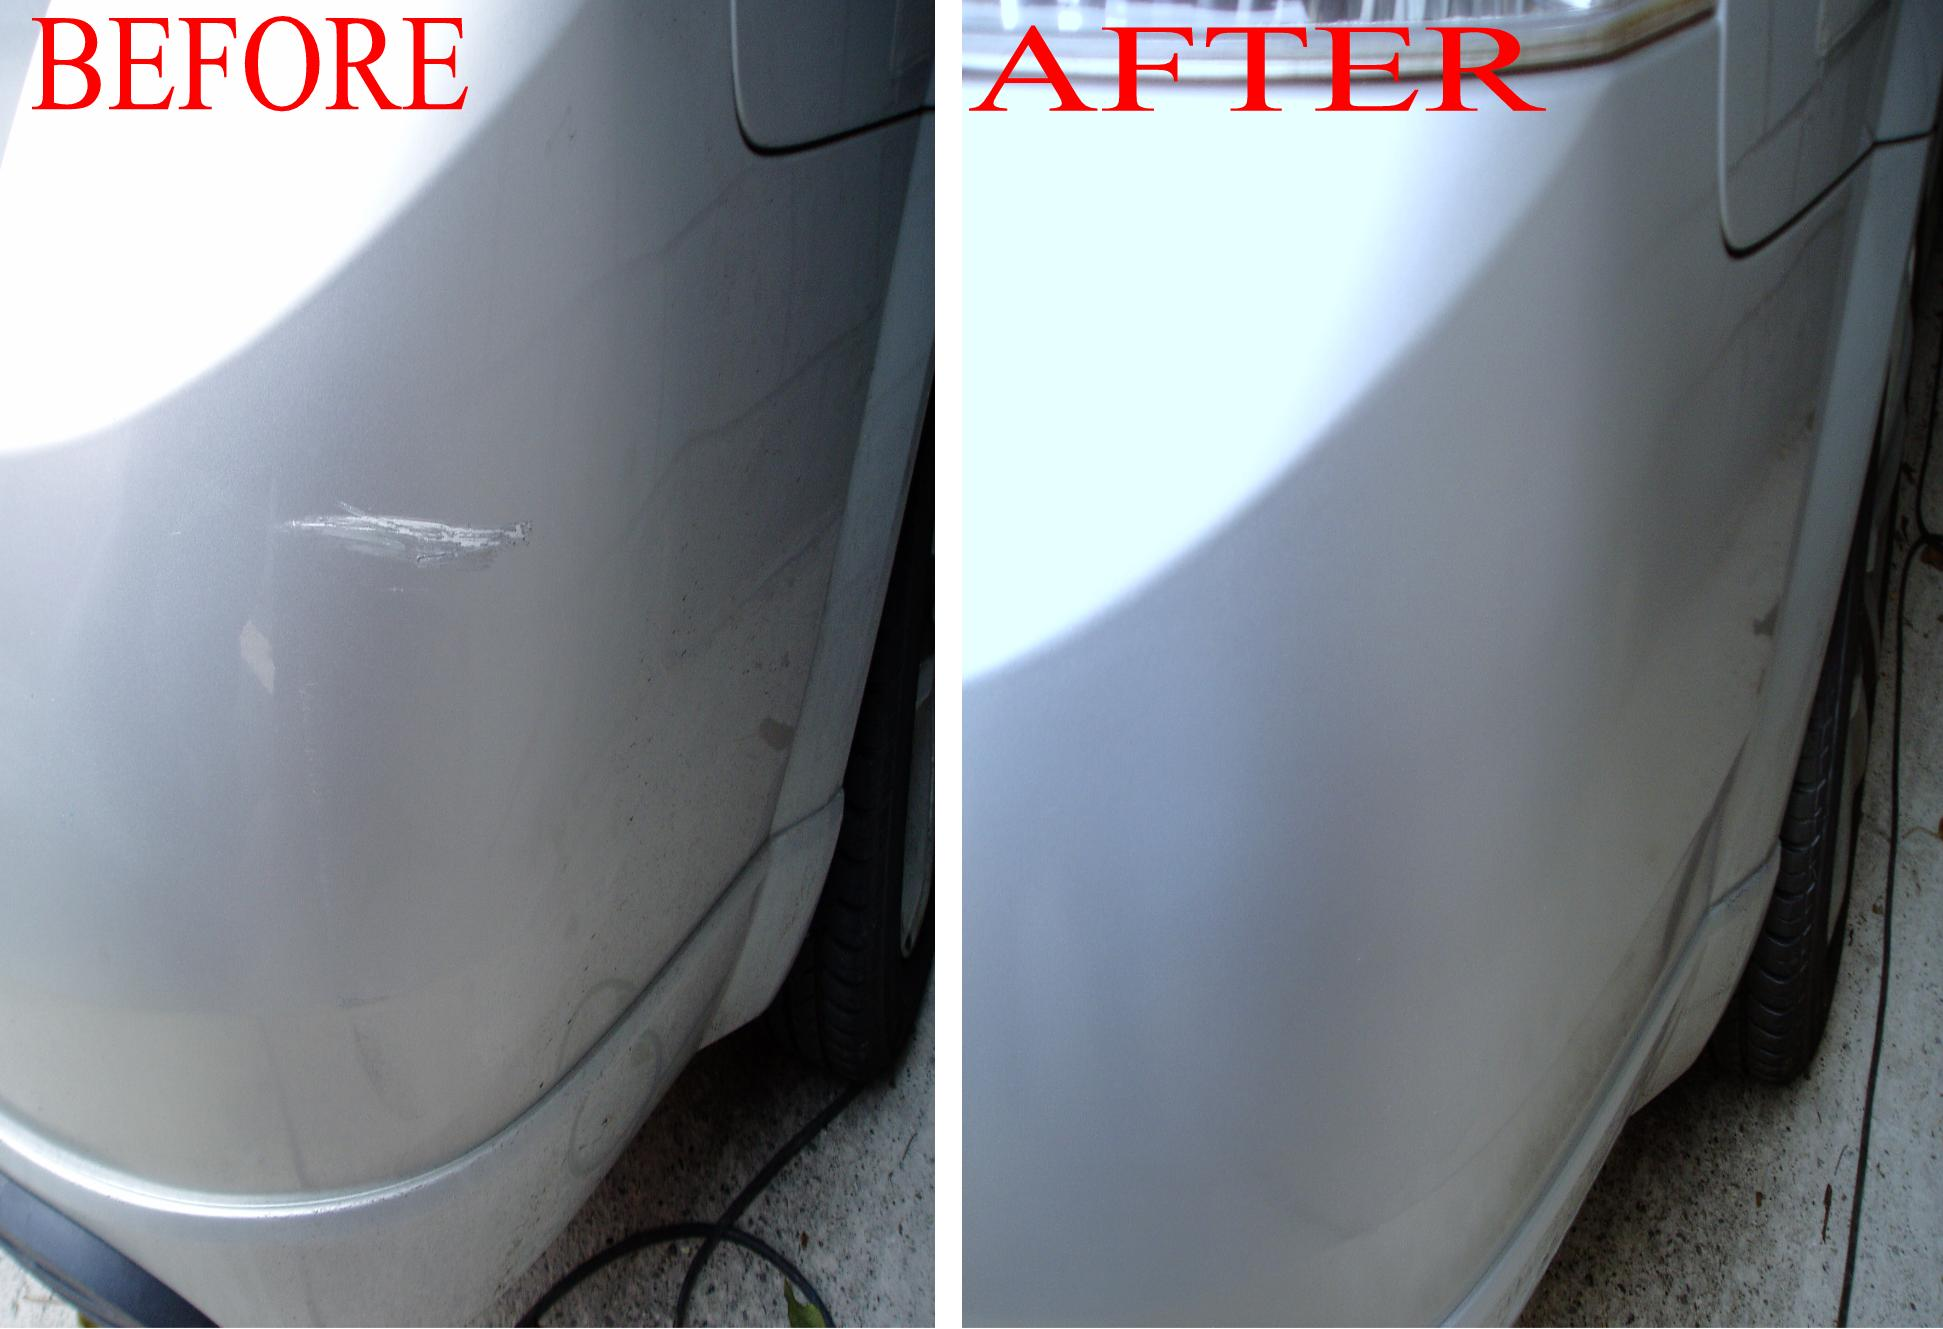 BUMPER SCUFF REPAIRS IN BIRMINGHAM TEL:01562885998 BUMPER SCUFF REPAIRS CARRIED OUT BY QUALITYSMARTS TECHS ON SITE AT THJE CUSTOMERS CONVENIENCE IN THE WEST MIDLANDS BIRMINGHAM SOLIHULL WOLVEHAMPTON AND TELFORD AREA ALL PLASTIC BUMPERS AND WHEEL ARCHES.